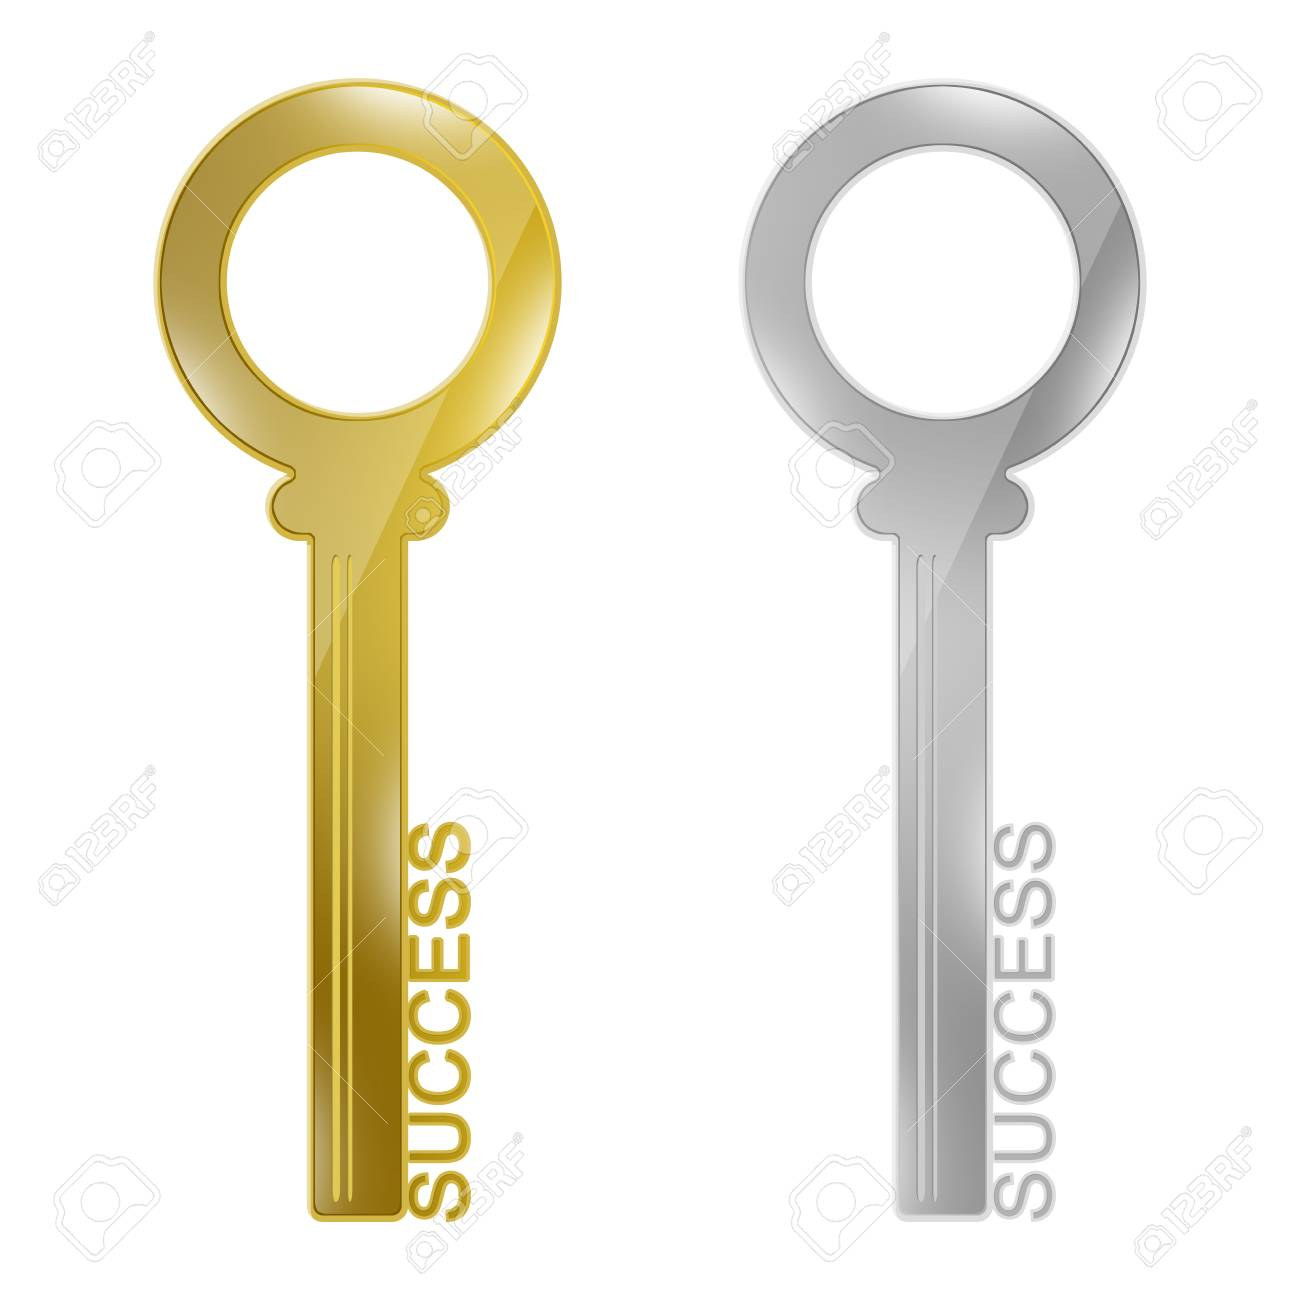 Key to Success Concept, Present By The Golden and Silver Key With Success Text Isolated on White Background Stock Photo - 17455019